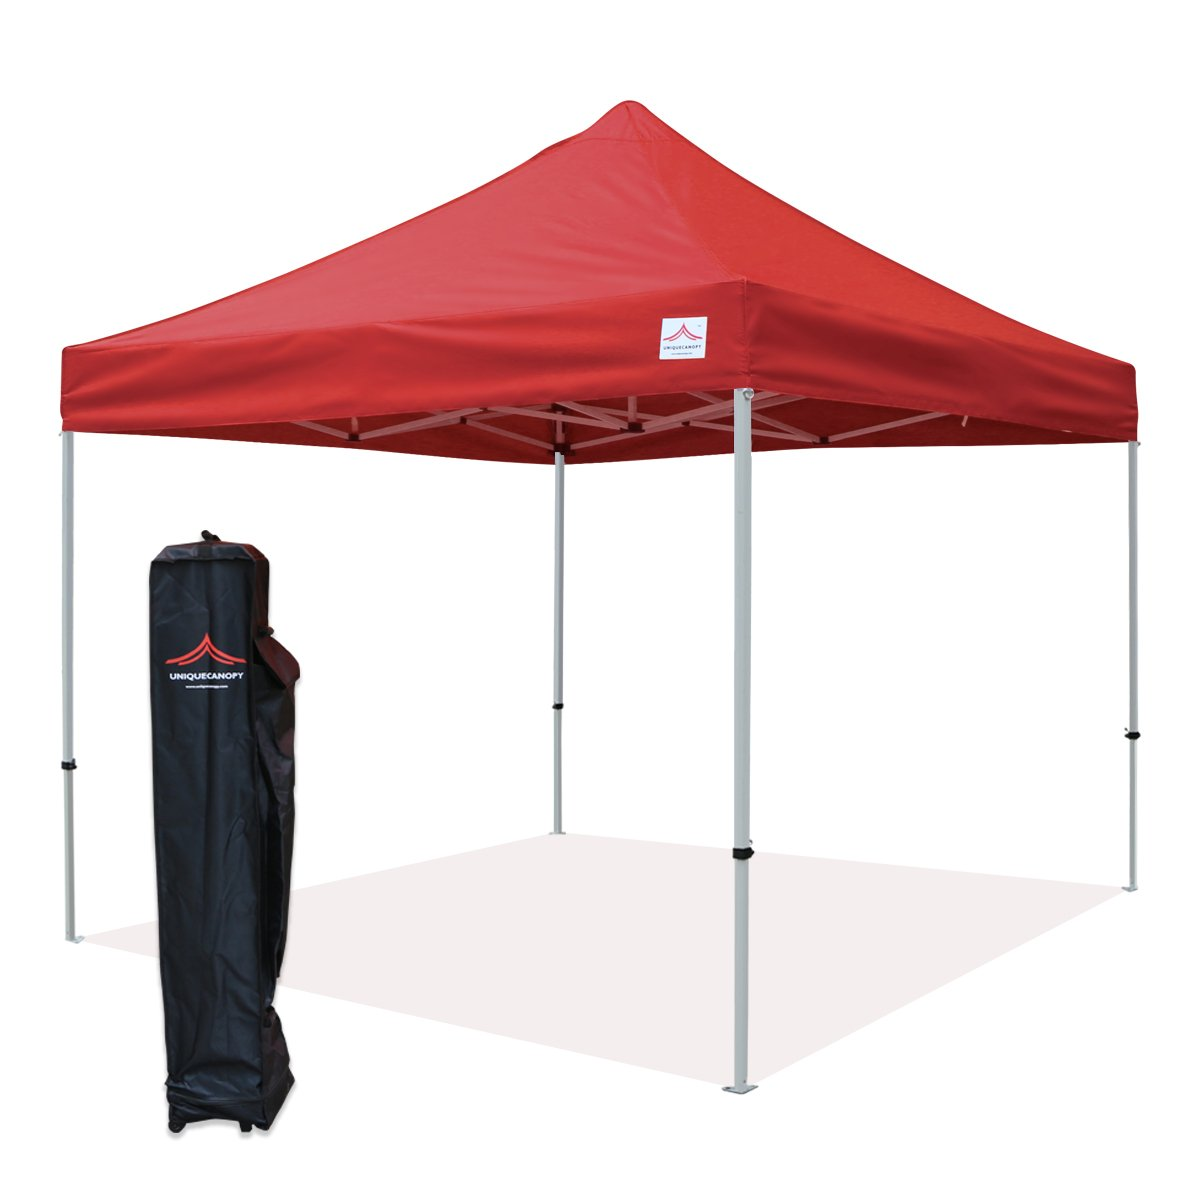 UNIQUECANOPY 10x10 Ez Pop up Canopy Tents for Parties Outdoor Portable Instant Folded Commercial Popup Shelter, with Wheeled Carrying Bag Red